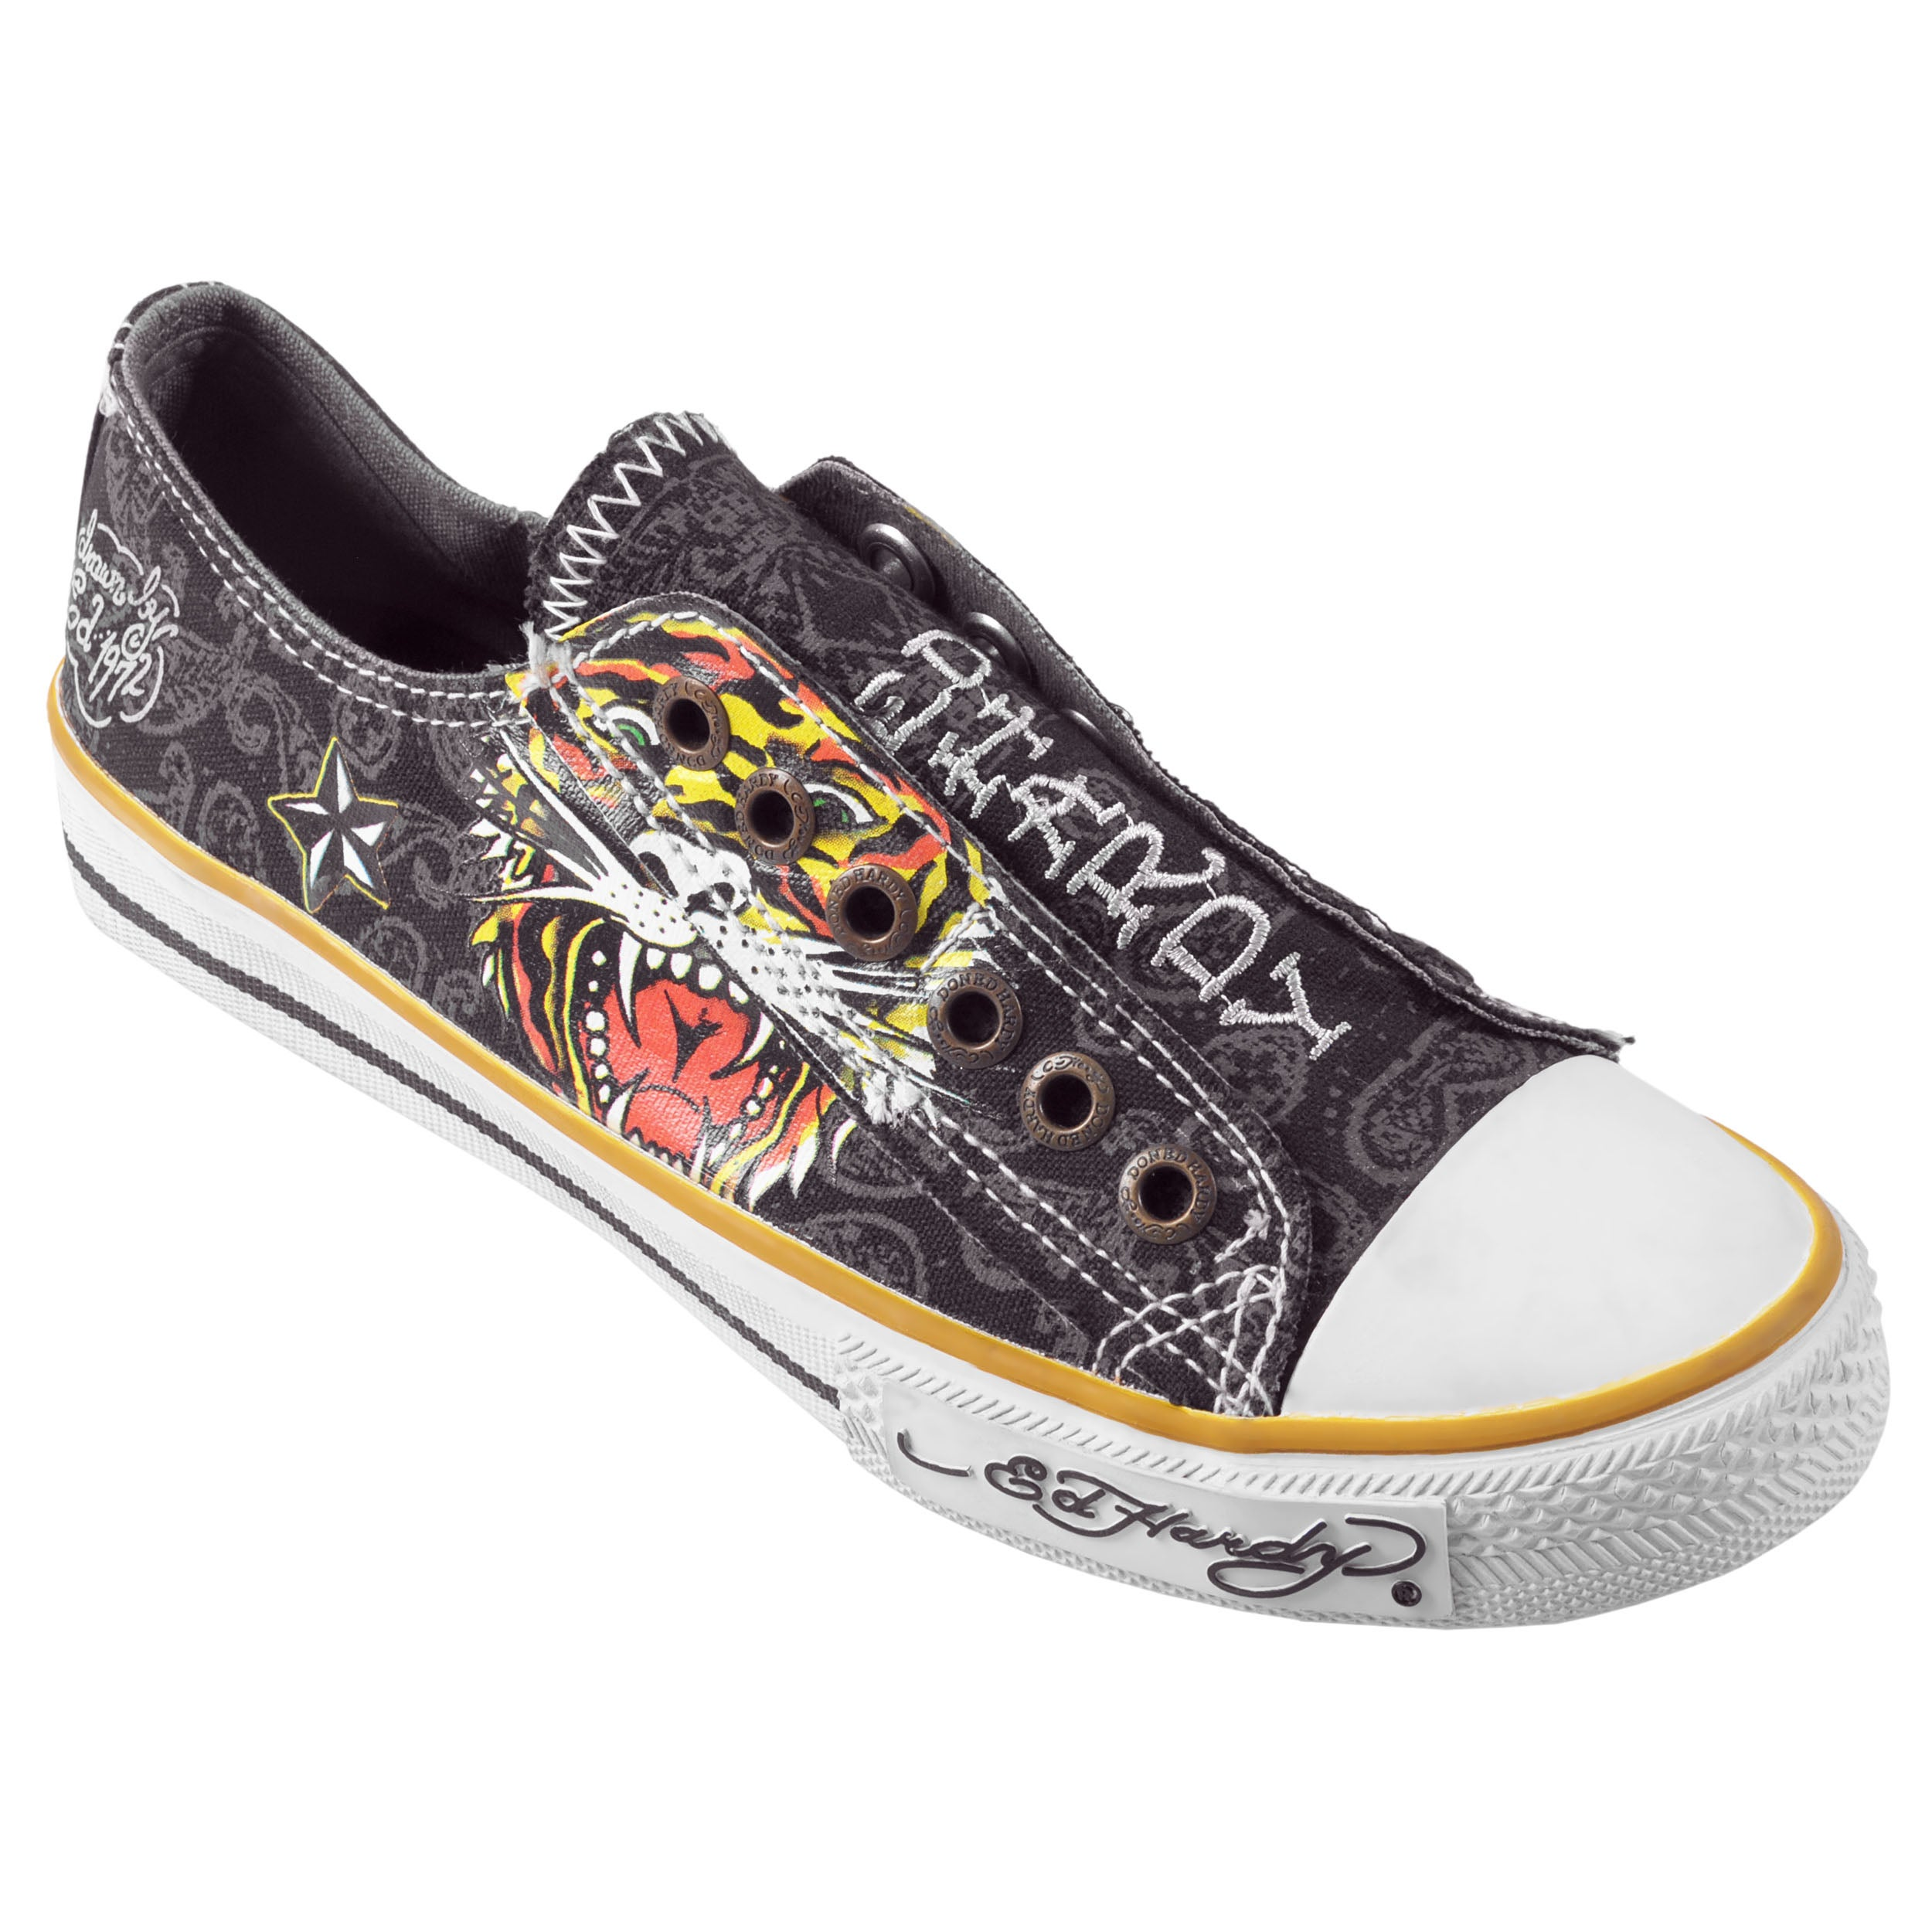 Ed Hardy Women's Black Low-Rise Graphic Print Slip-On Sneakers